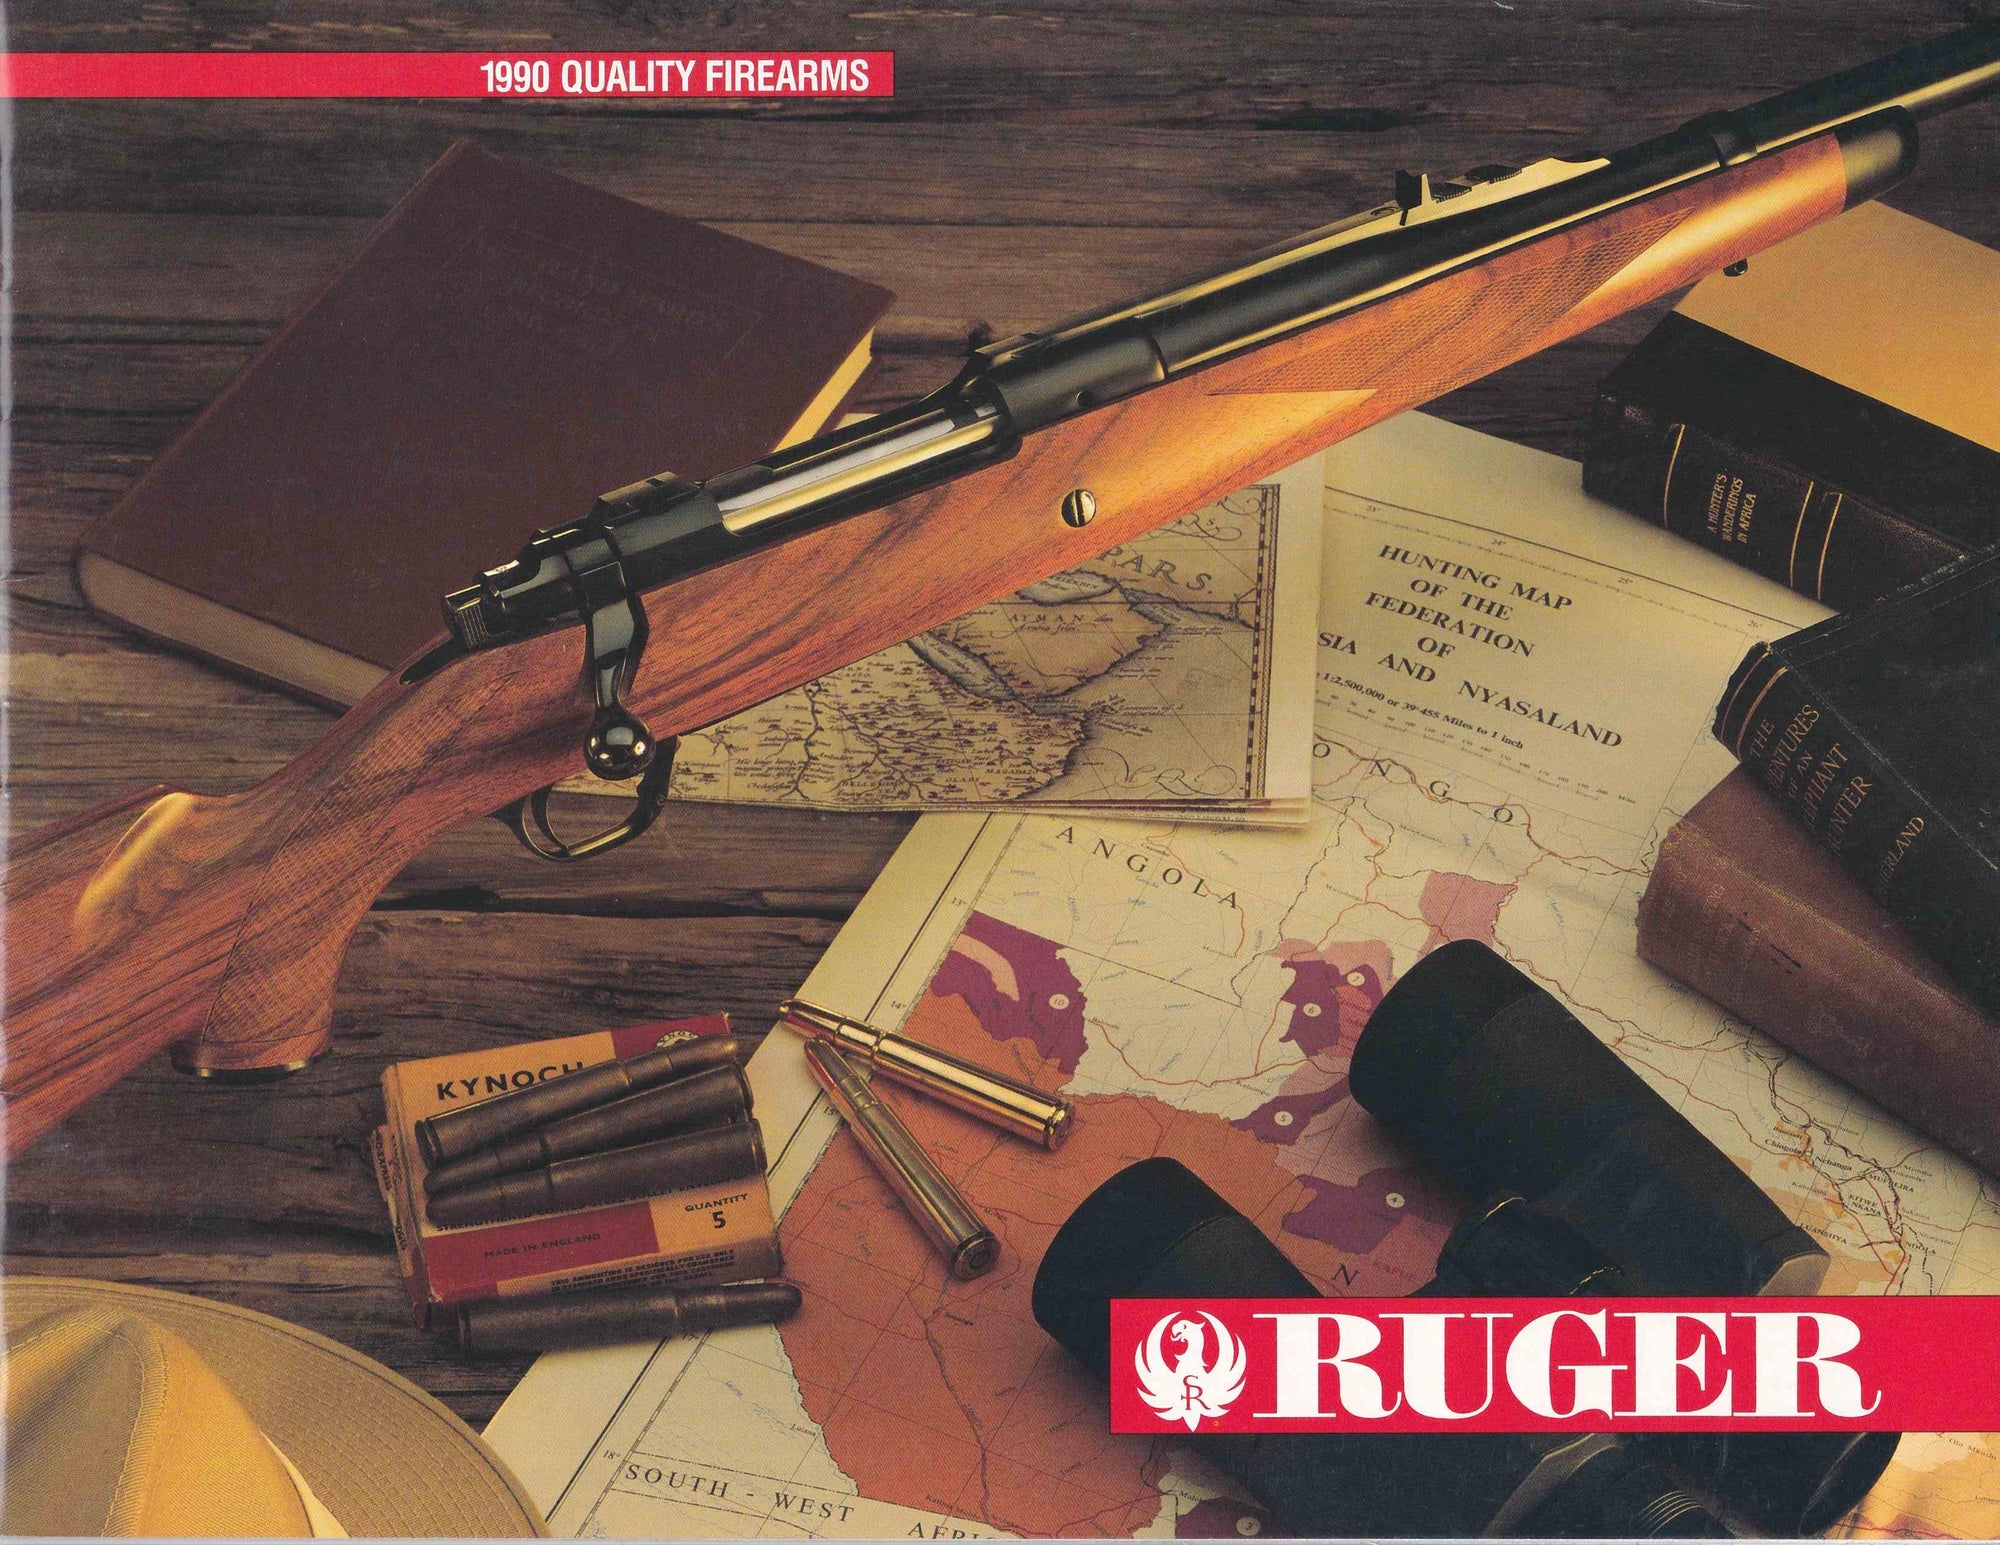 Ruger Catalogue 1990